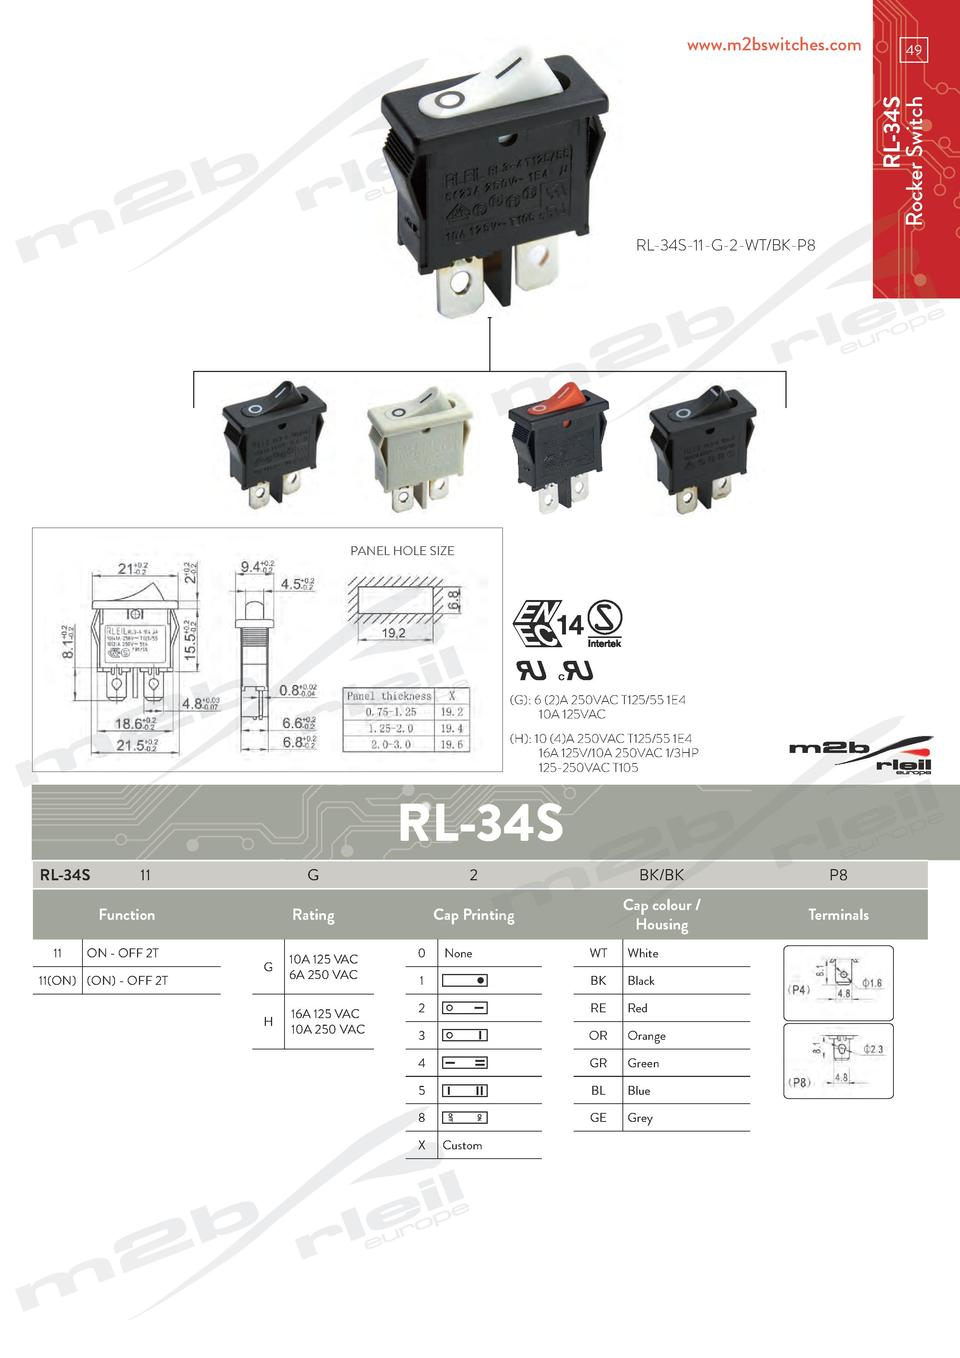 49  RL-34S Rocker Switch  www.m2bswitches.com  RL-34S-11-G-2-WT BK-P8  PANEL HOLE SIZE   G   6  2 A 250VAC T125 55 1E4   1...